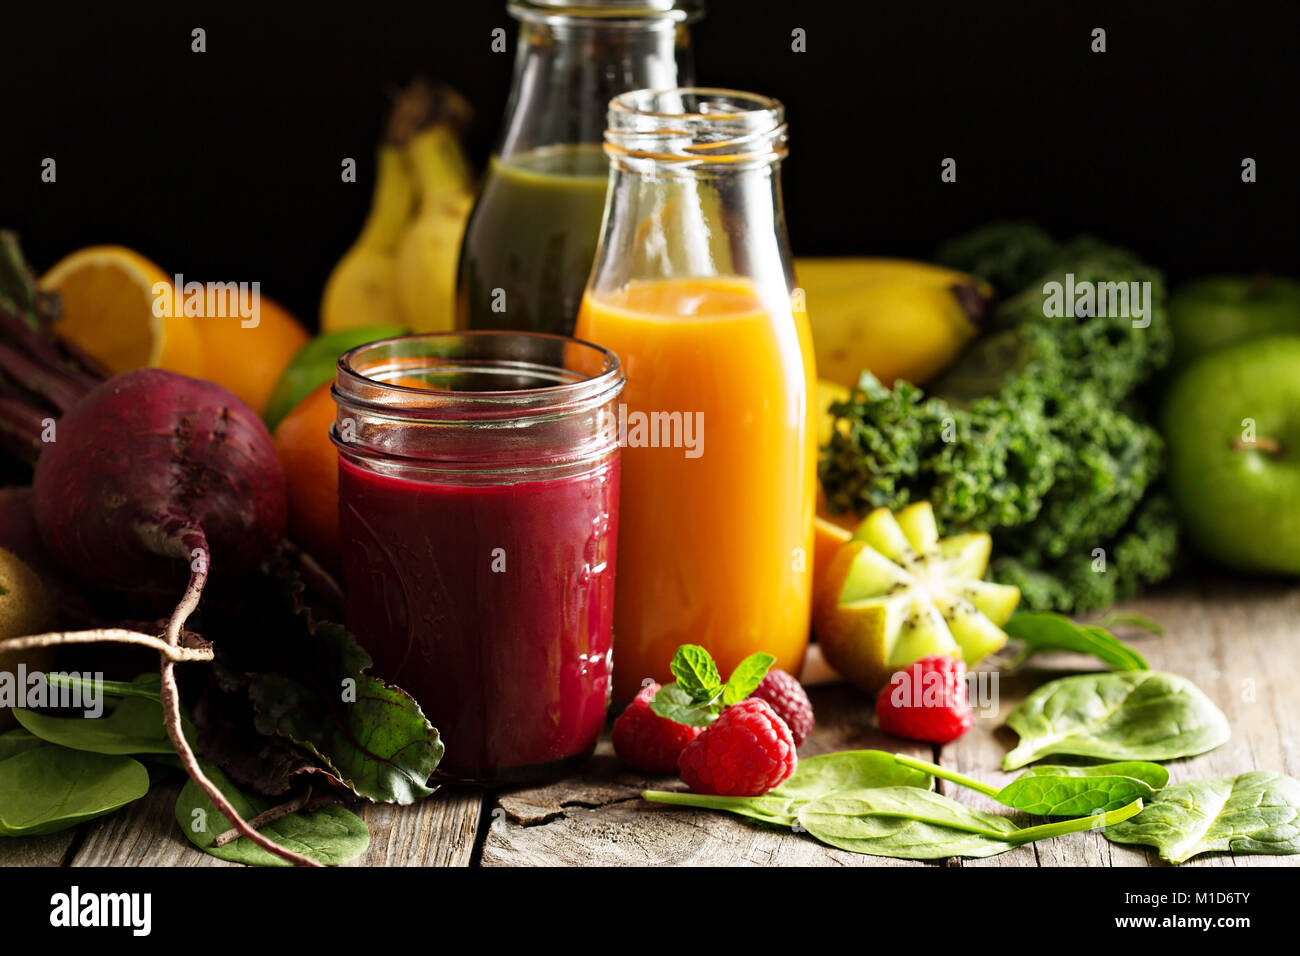 Fresh vegetable and fruit juices with beets, berries and greens - Stock Image